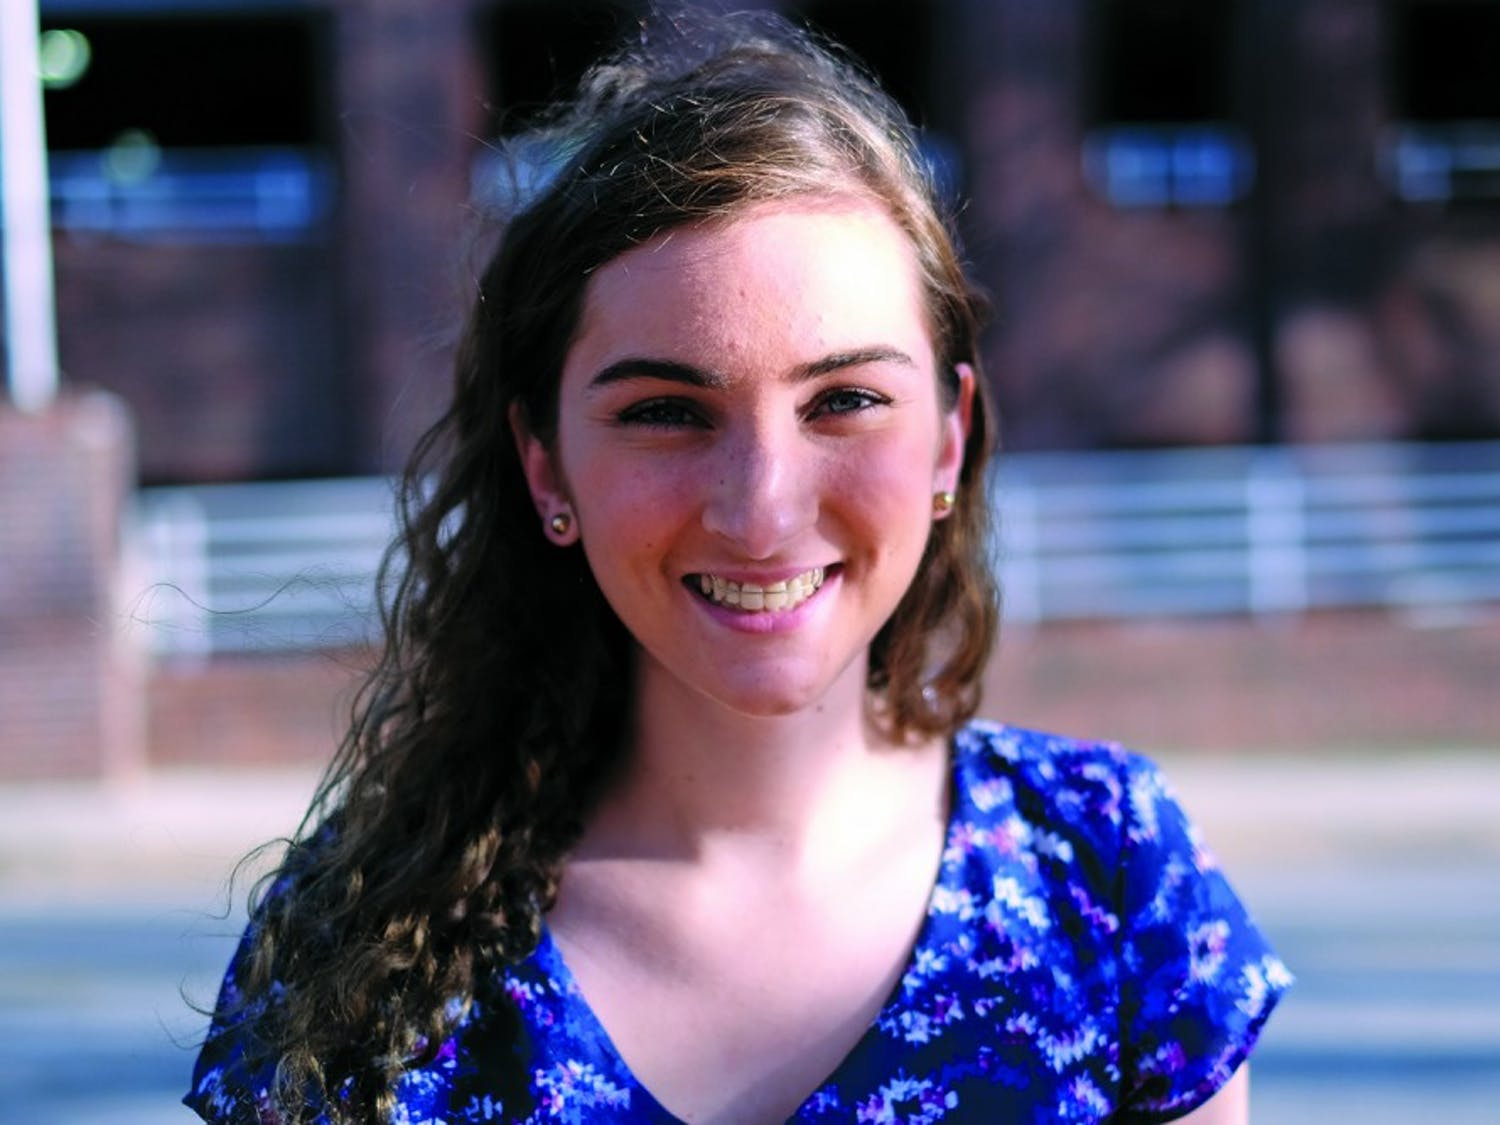 Alison Krug is a junior journalism major from Concord. She wrote her platform while stuck in a hunting lodge full of taxidermy.